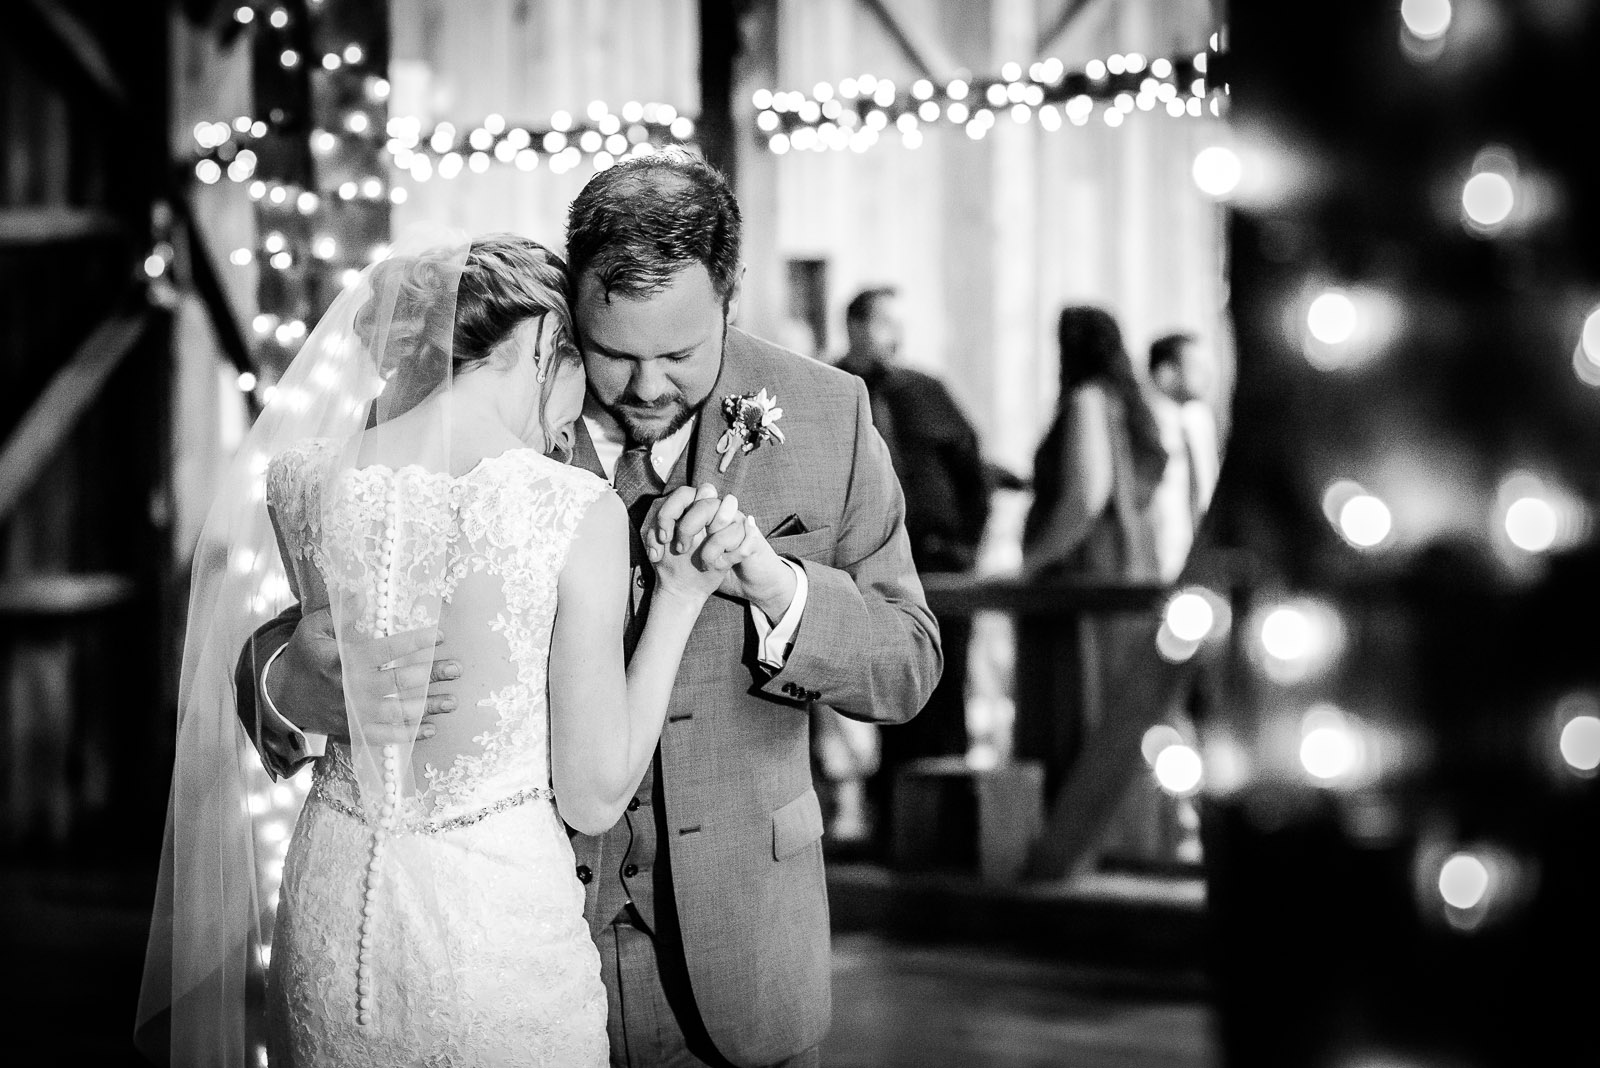 Eric_and_Christy_Photography_Blog_Wedding_Kelly_Matt-68